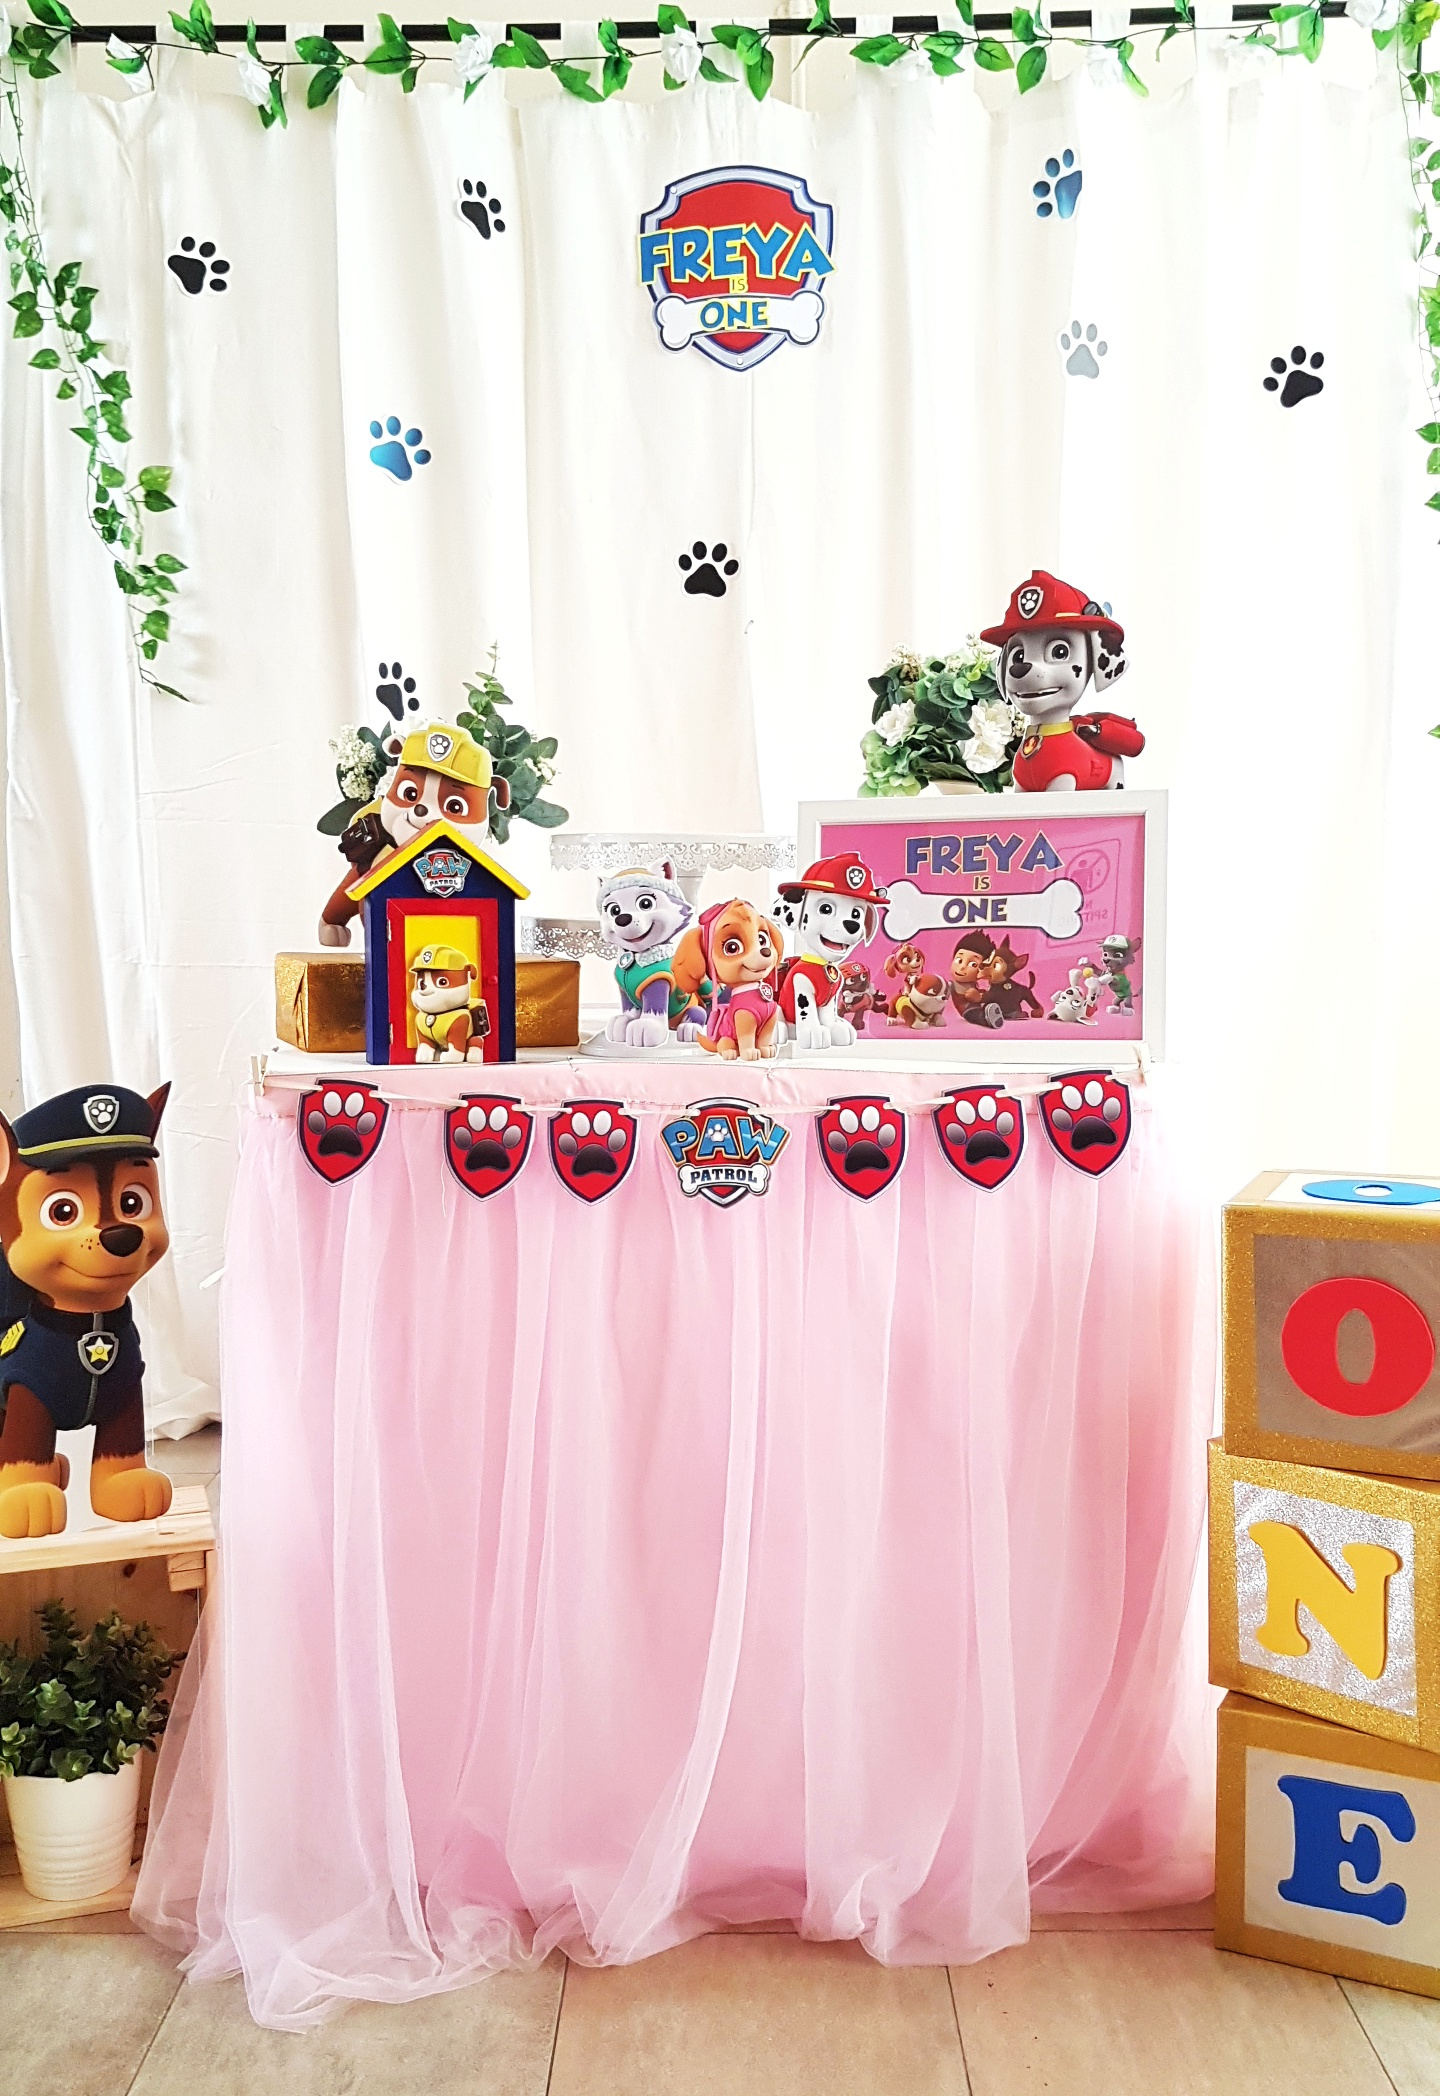 Paw Patrol Dessert Table by The Baking Experiment